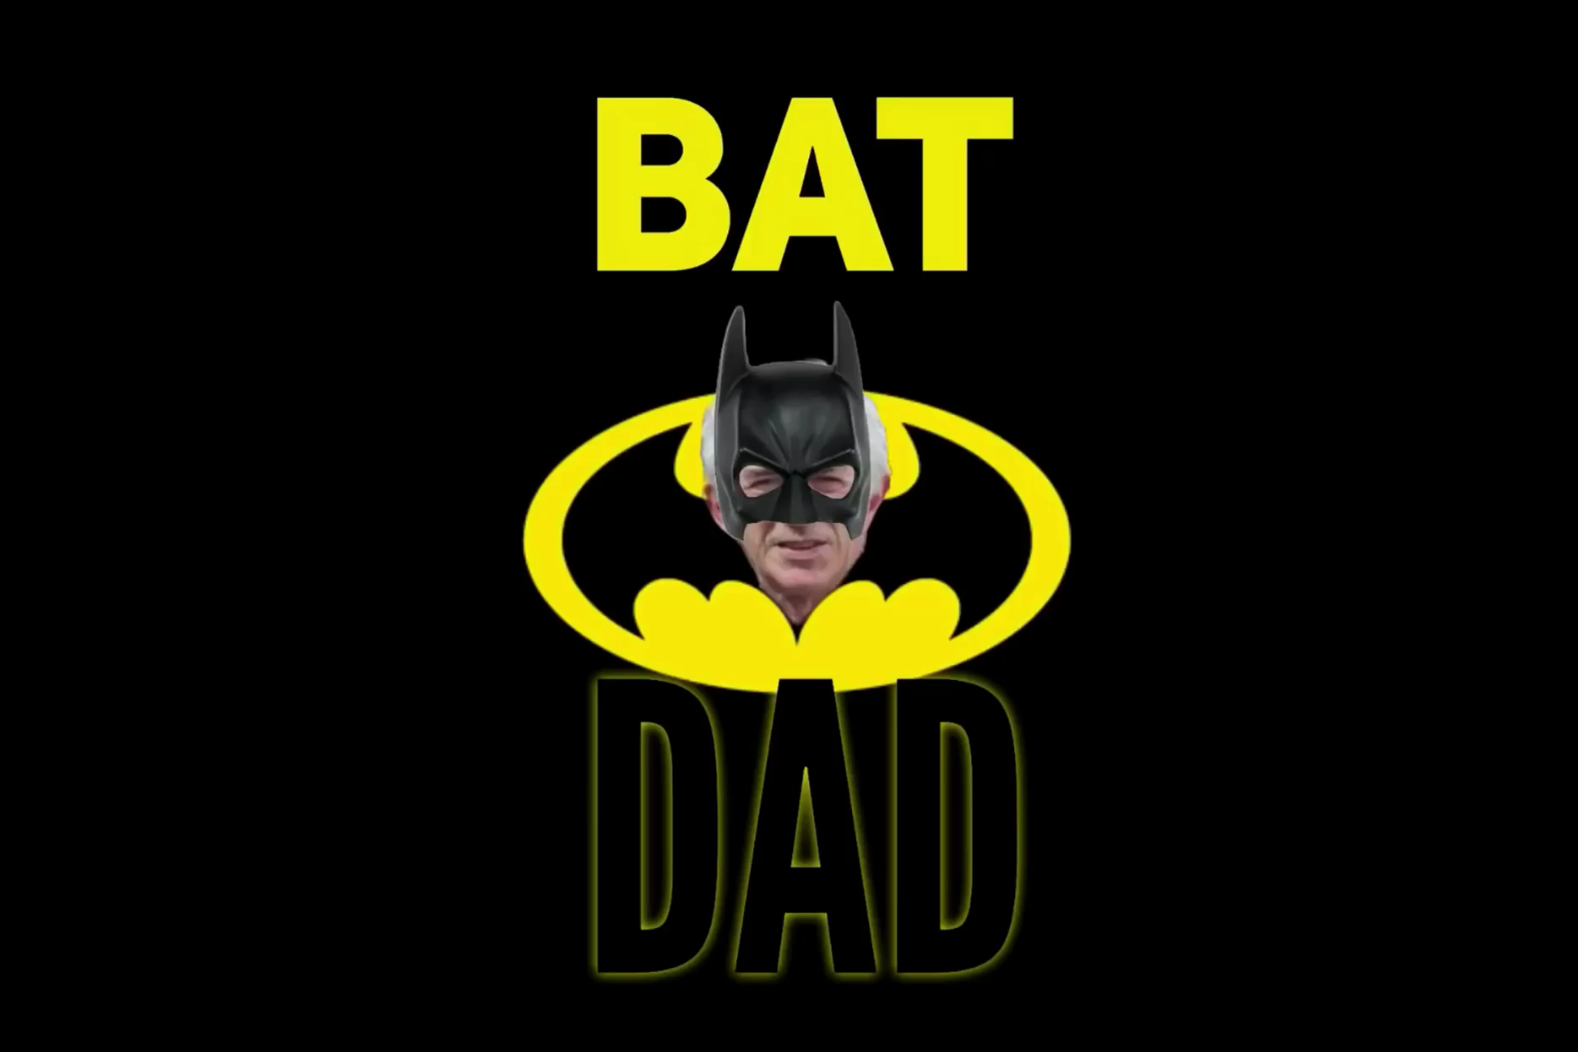 'Bat Dad' brings the Kerry accent to the world in a hilarious viral video